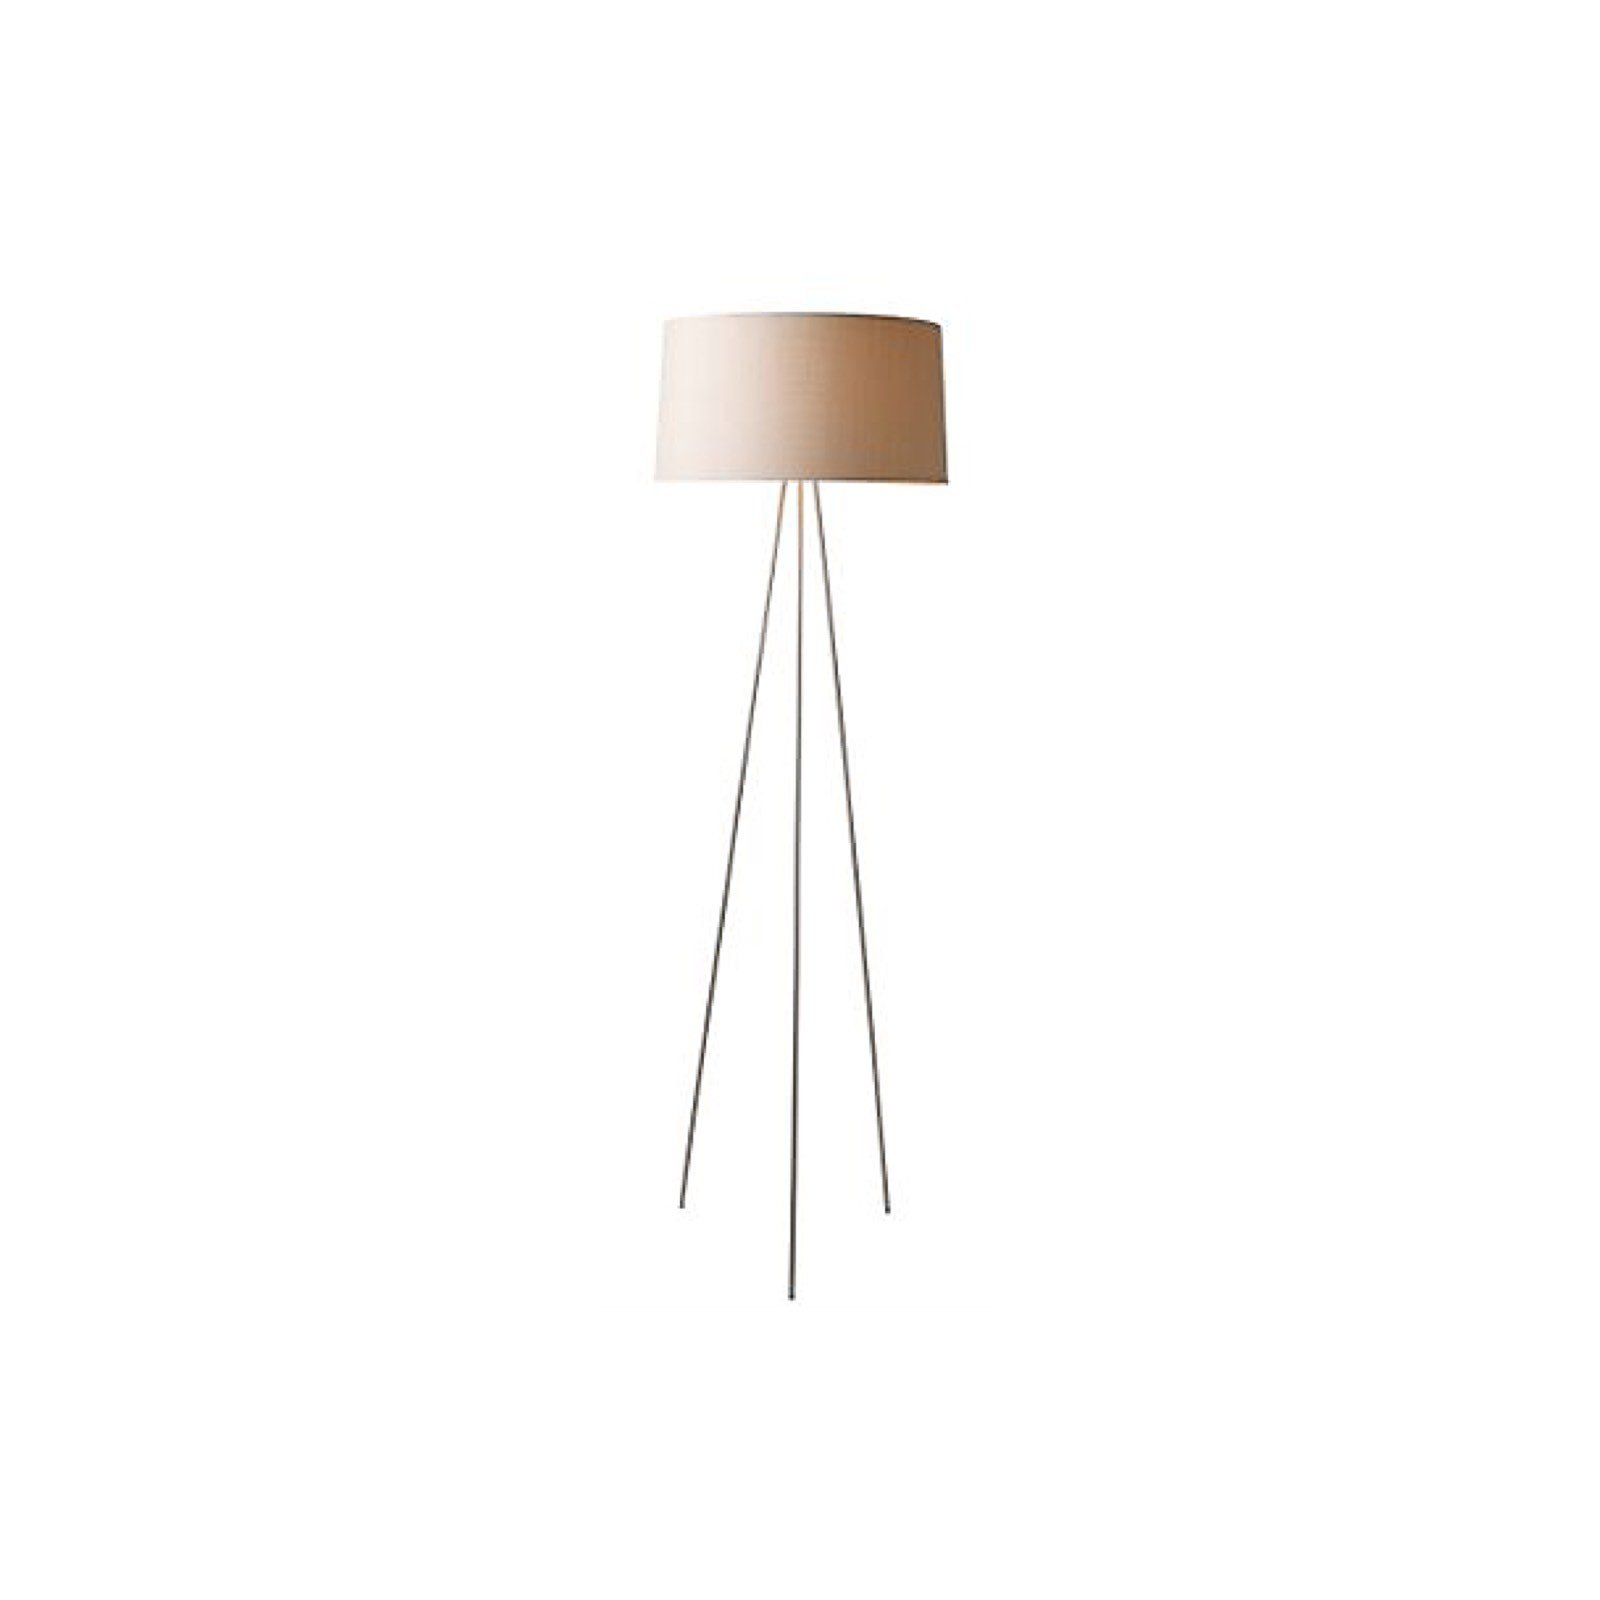 Tripod Floor Lamp By Design Within